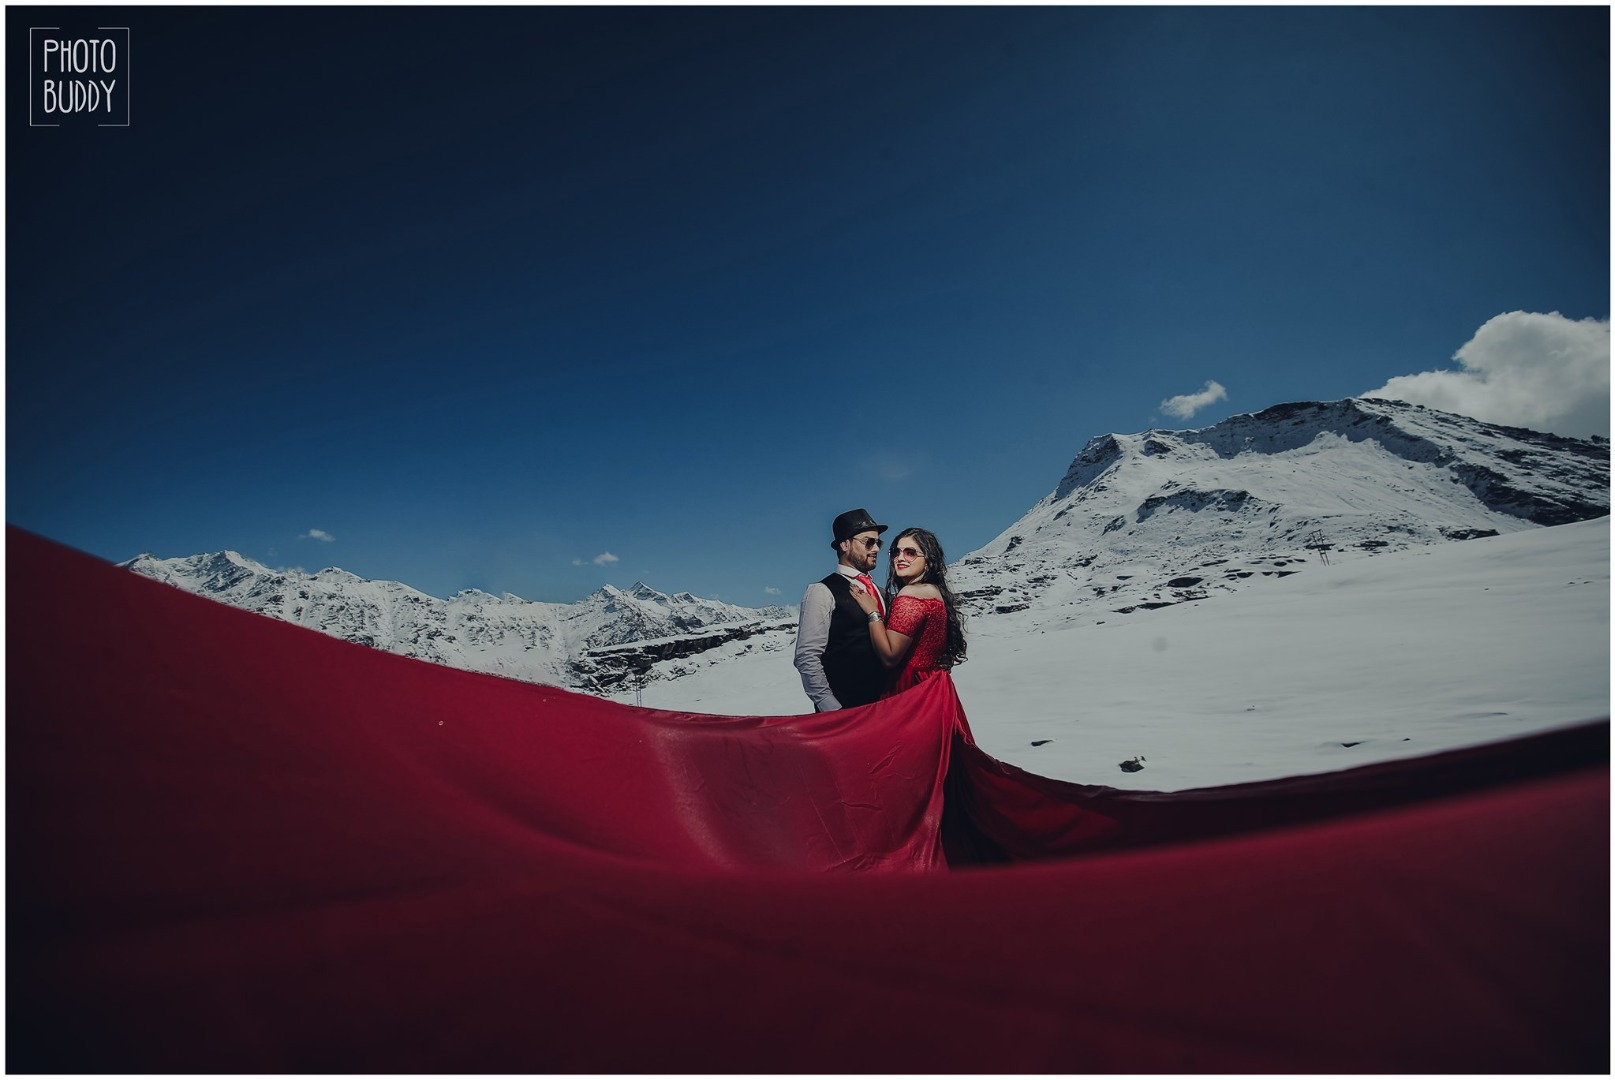 Couple Portrait in Mountains